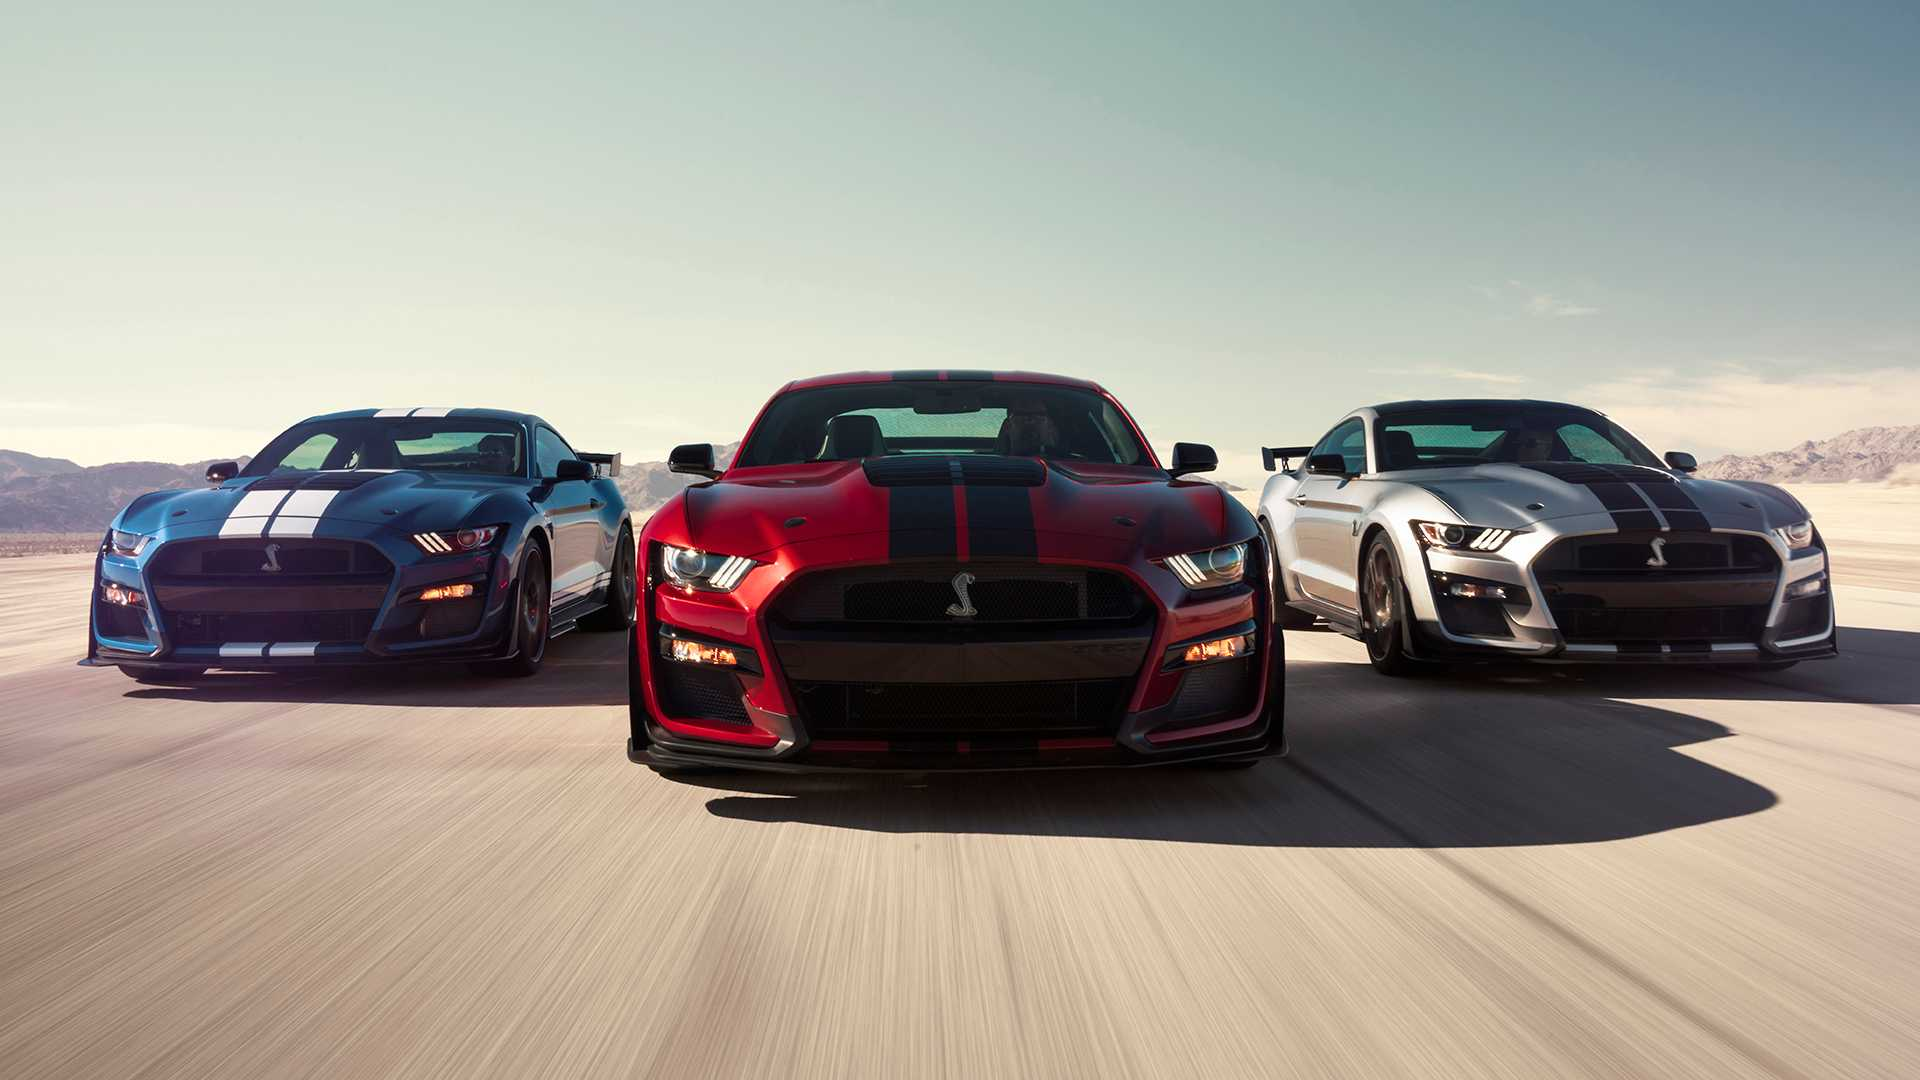 32 A 2020 Ford Mustang Shelby Gt500 Research New